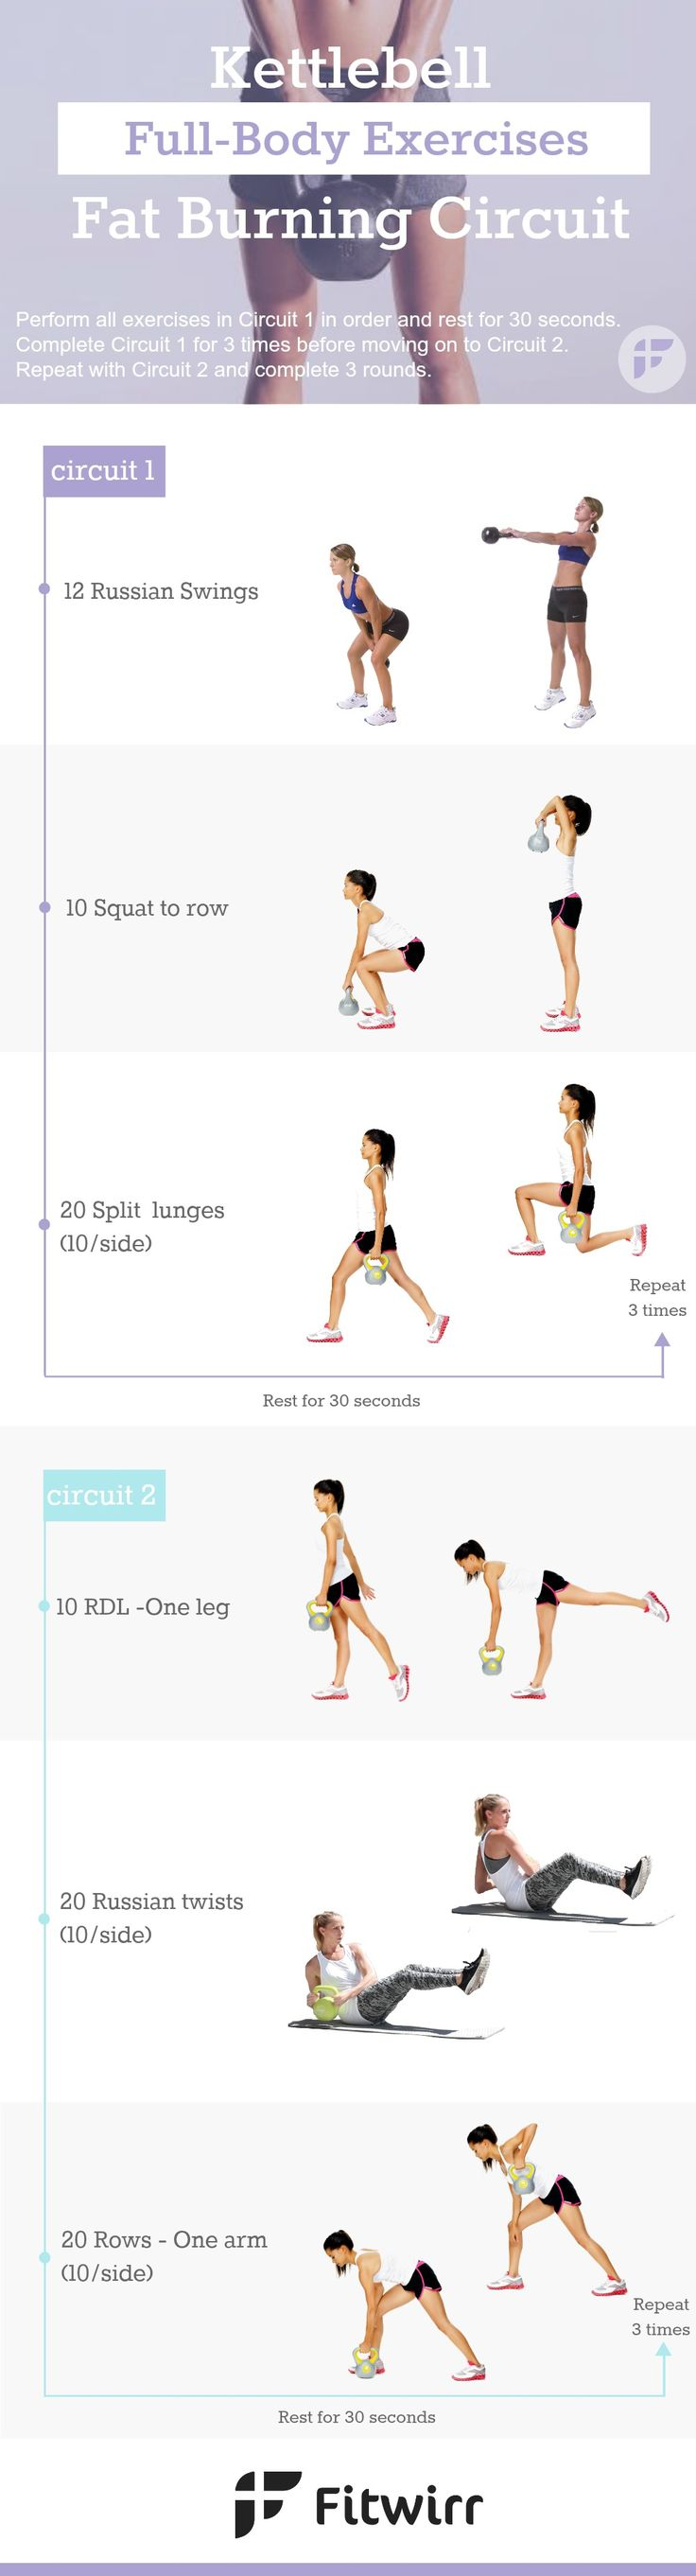 one minute exercise to lose weight